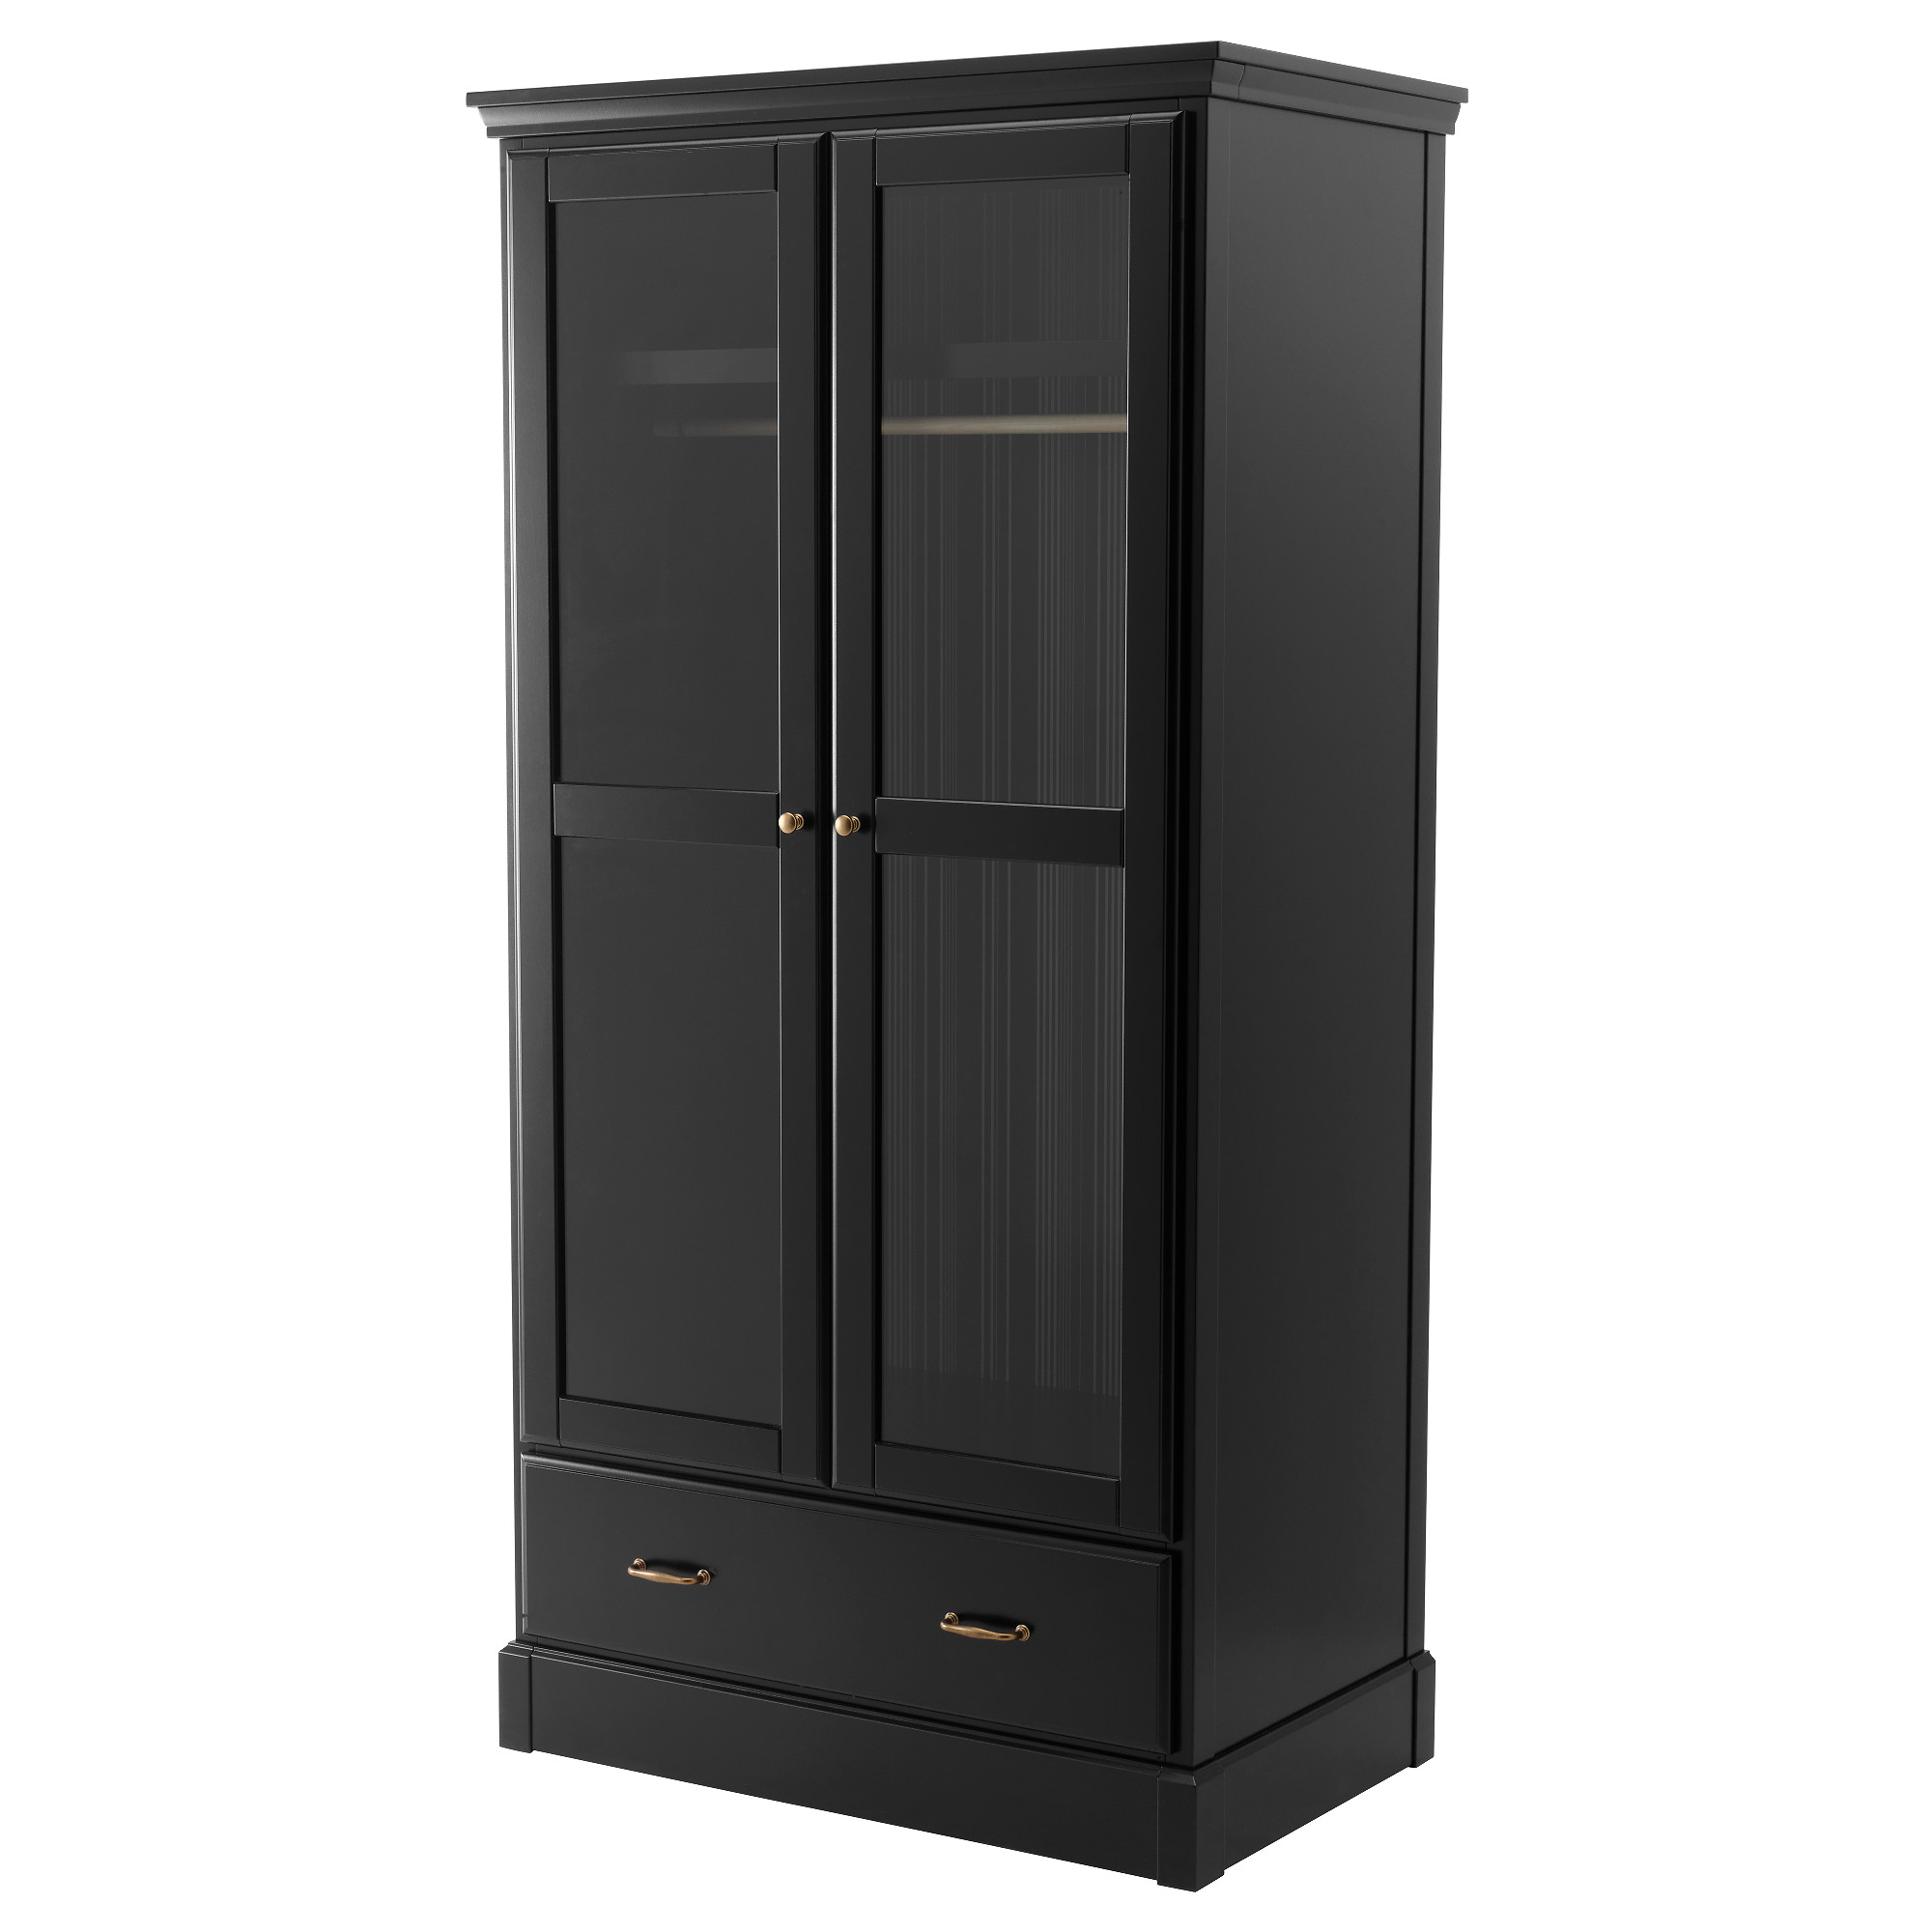 kleiderschrank schiebet ren schwarz. Black Bedroom Furniture Sets. Home Design Ideas